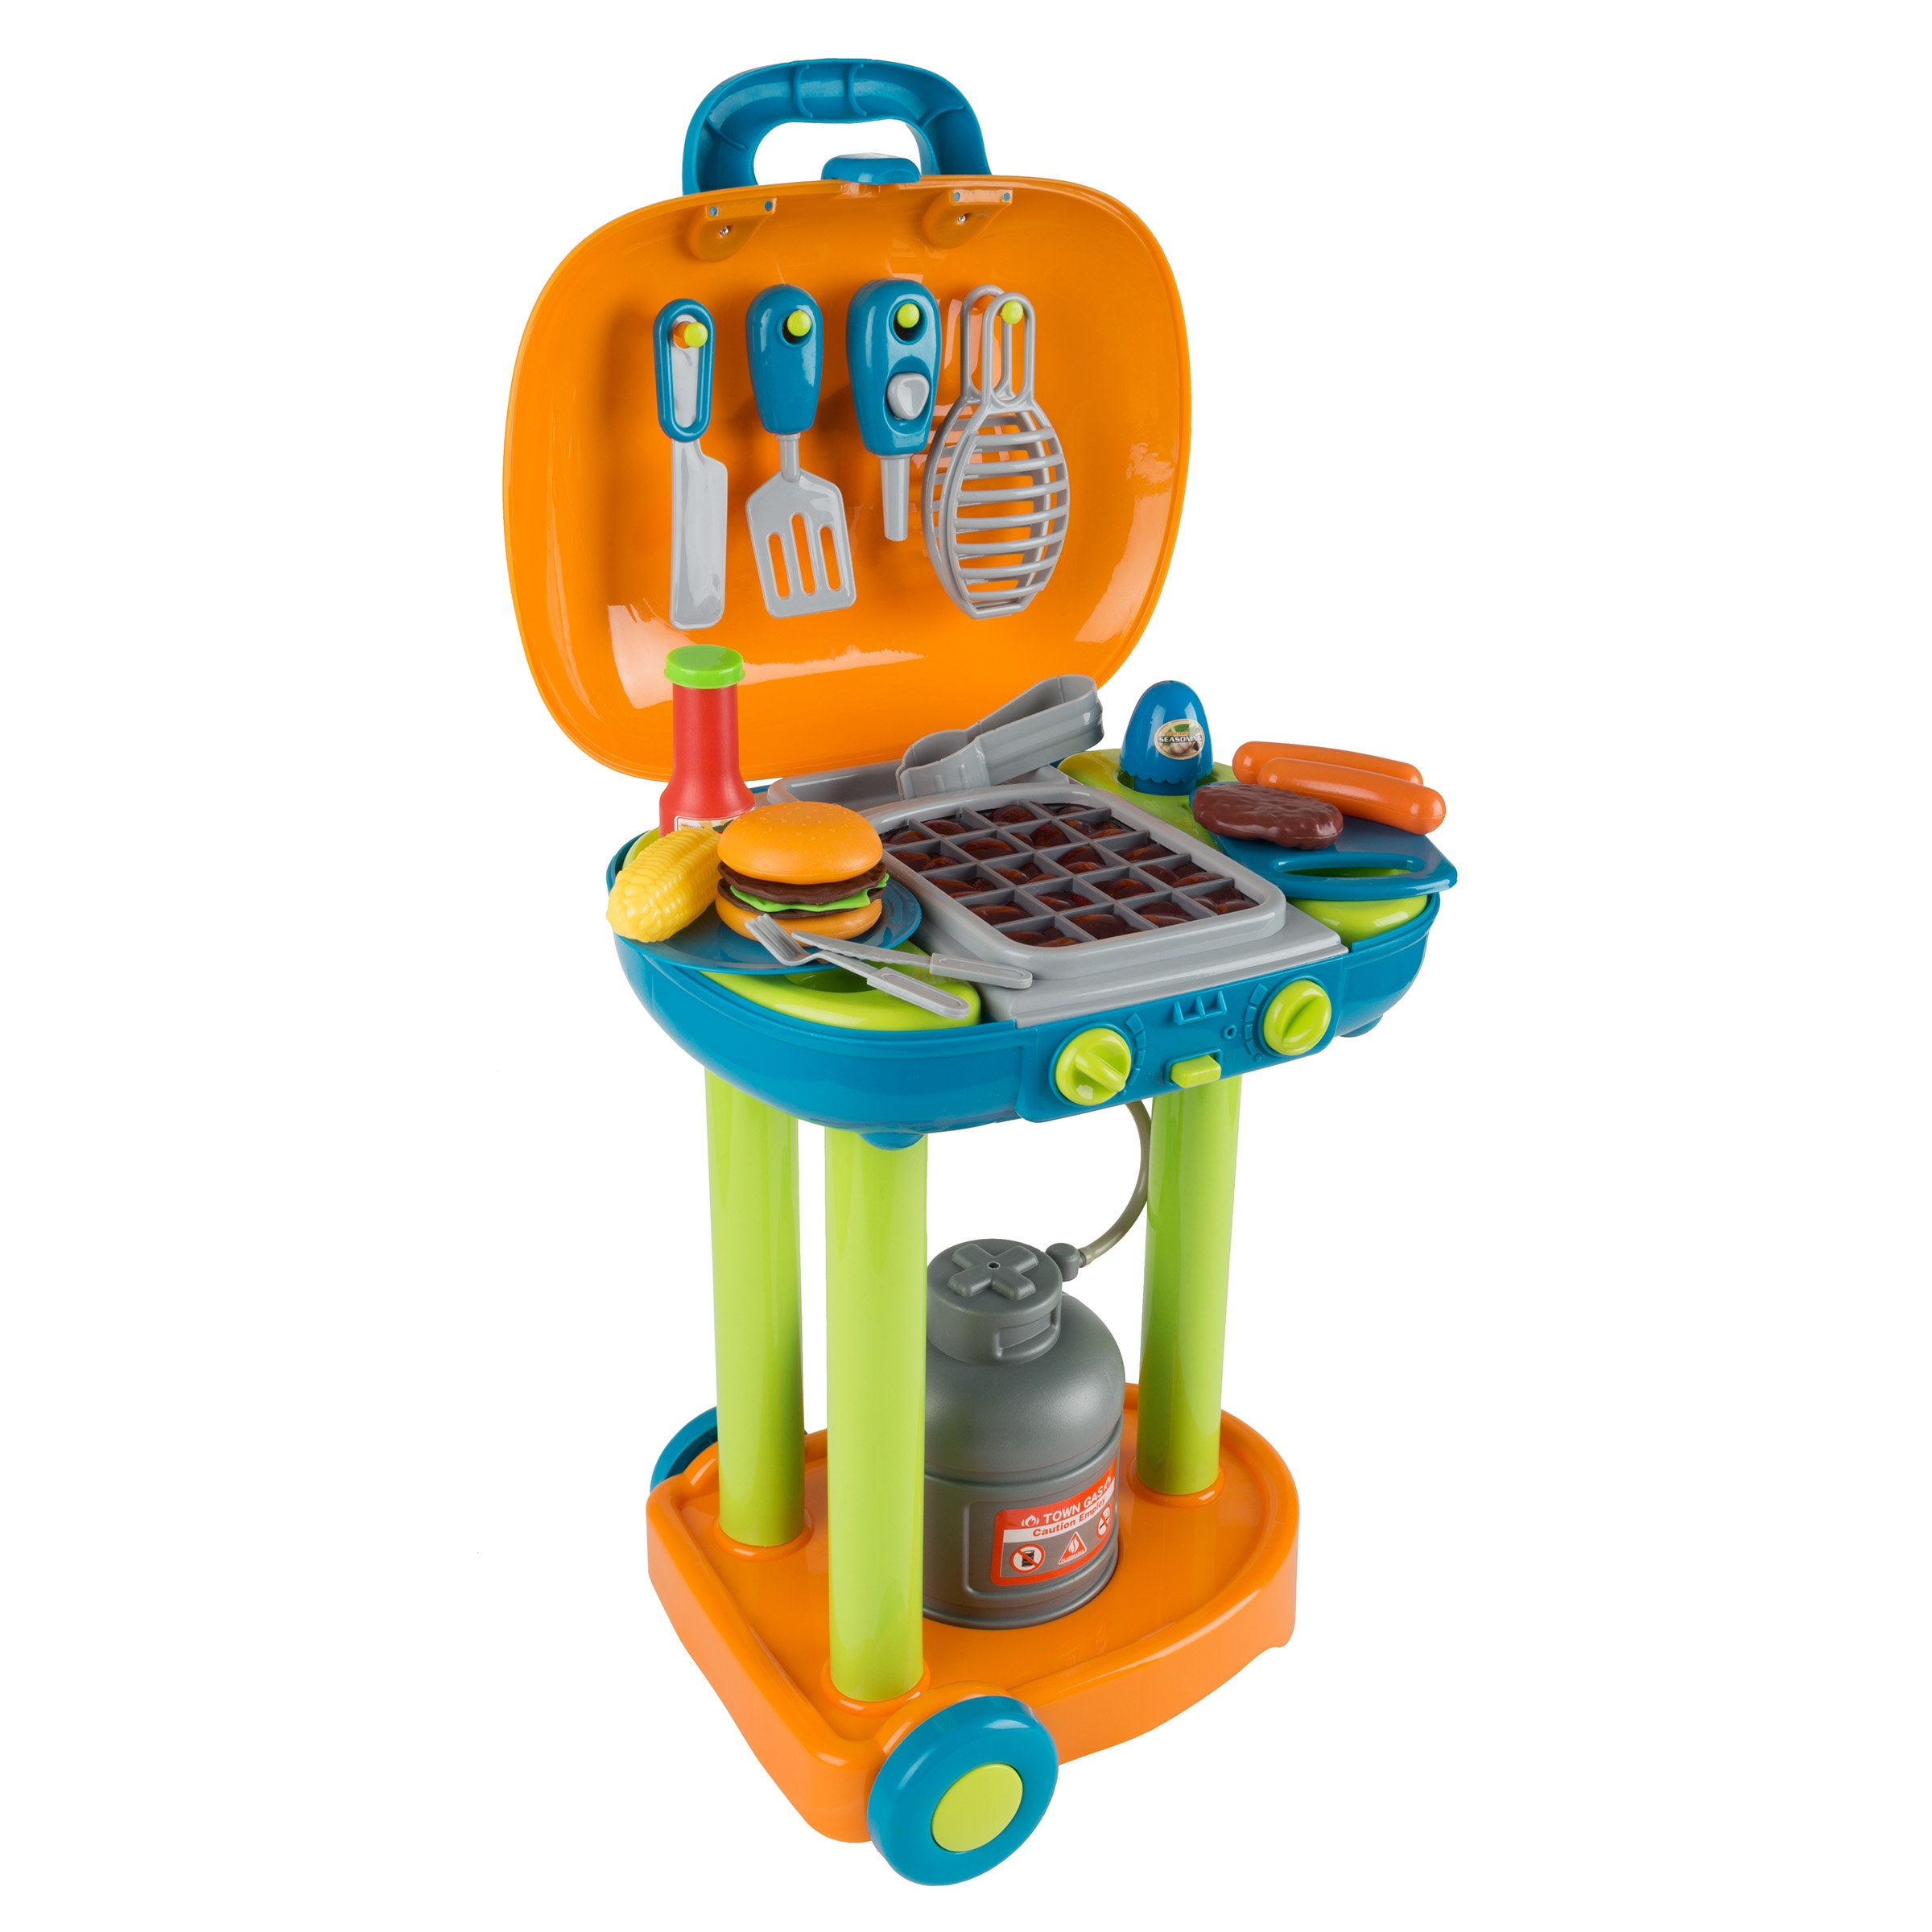 BBQ Grill Toy Set- Kids Dinner Playset with Realistic Sounds and Grate Lights- Includes Barbecue Food and Accessories, Pretend Kitchen by Hey! Play! (Image #1)